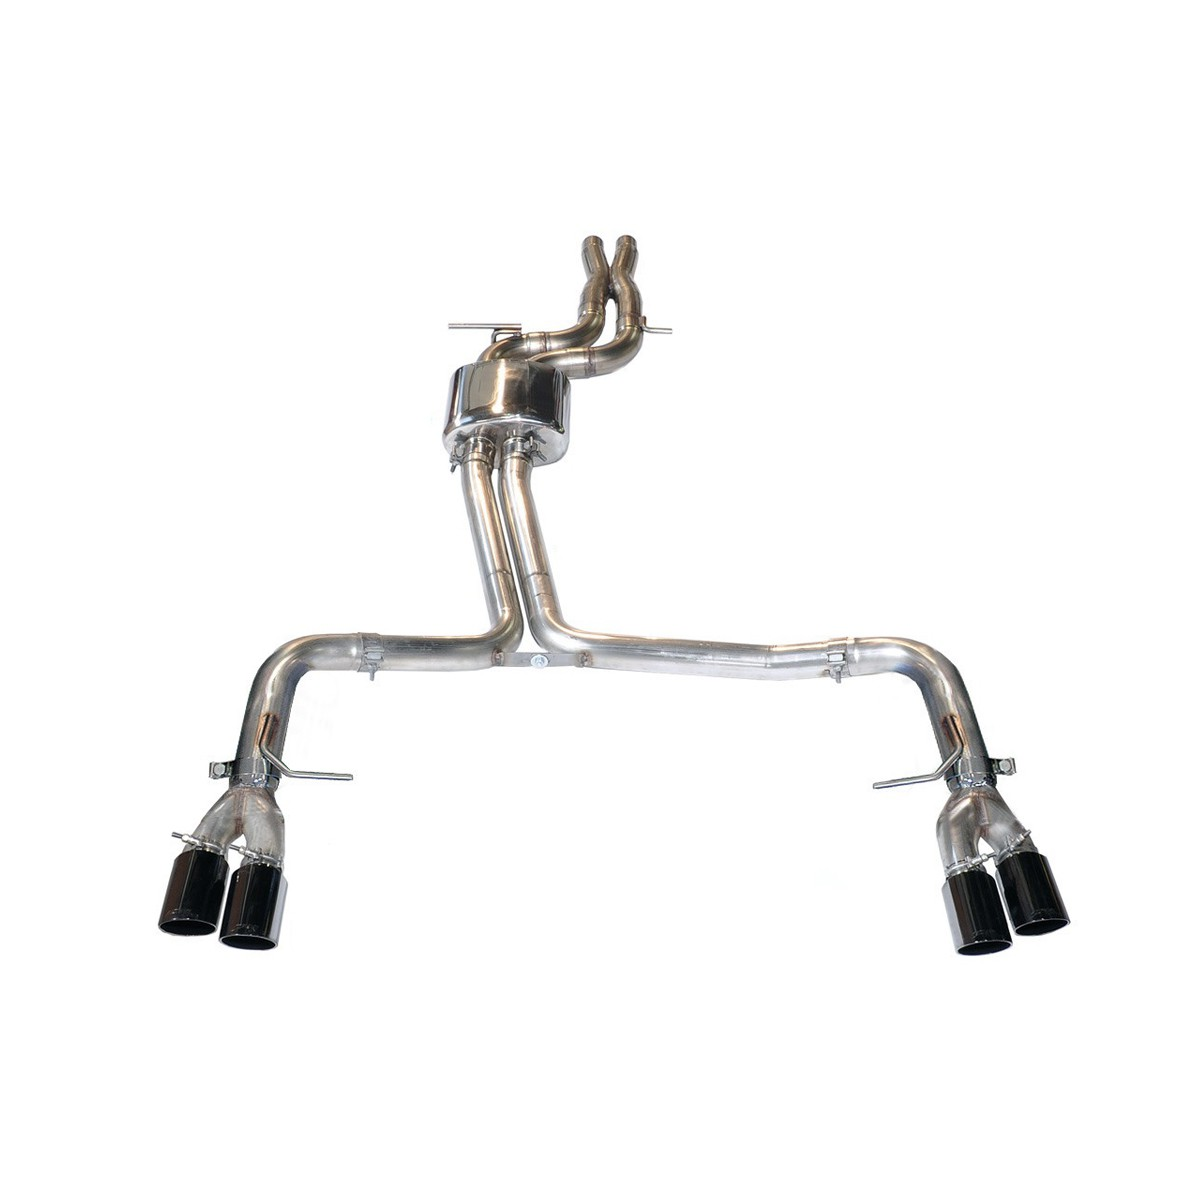 AWE Tuning B8.5 Audi S4 Track Edition Cat-Back Exhaust System | AWE-B8.5-AUDI-S4-CBE-TRACK